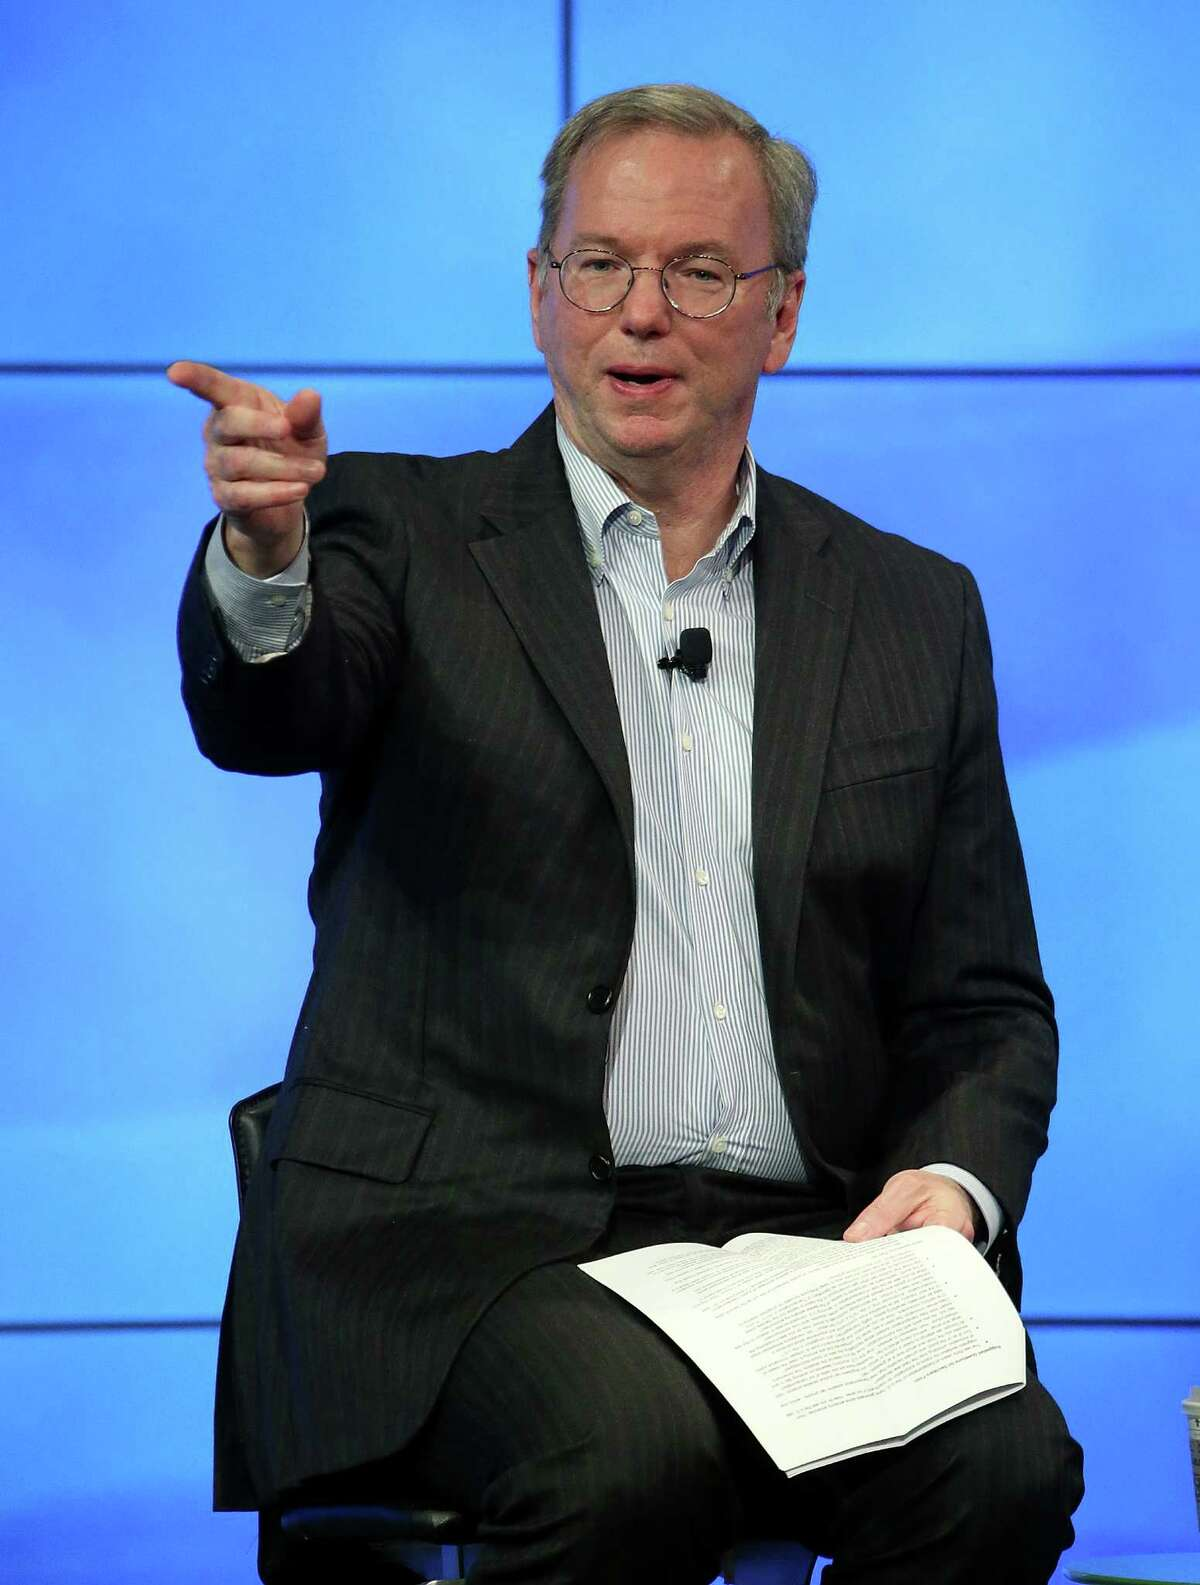 Google Executive Chairman Eric Schmidt and his wife Wendy Schmidt have given $10 million to the Monterey Bay Aquarium's Seafood Watch program, the latest chunk of tech cash to benefit a cherished cause. See slideshow for the biggest American donors 2014.